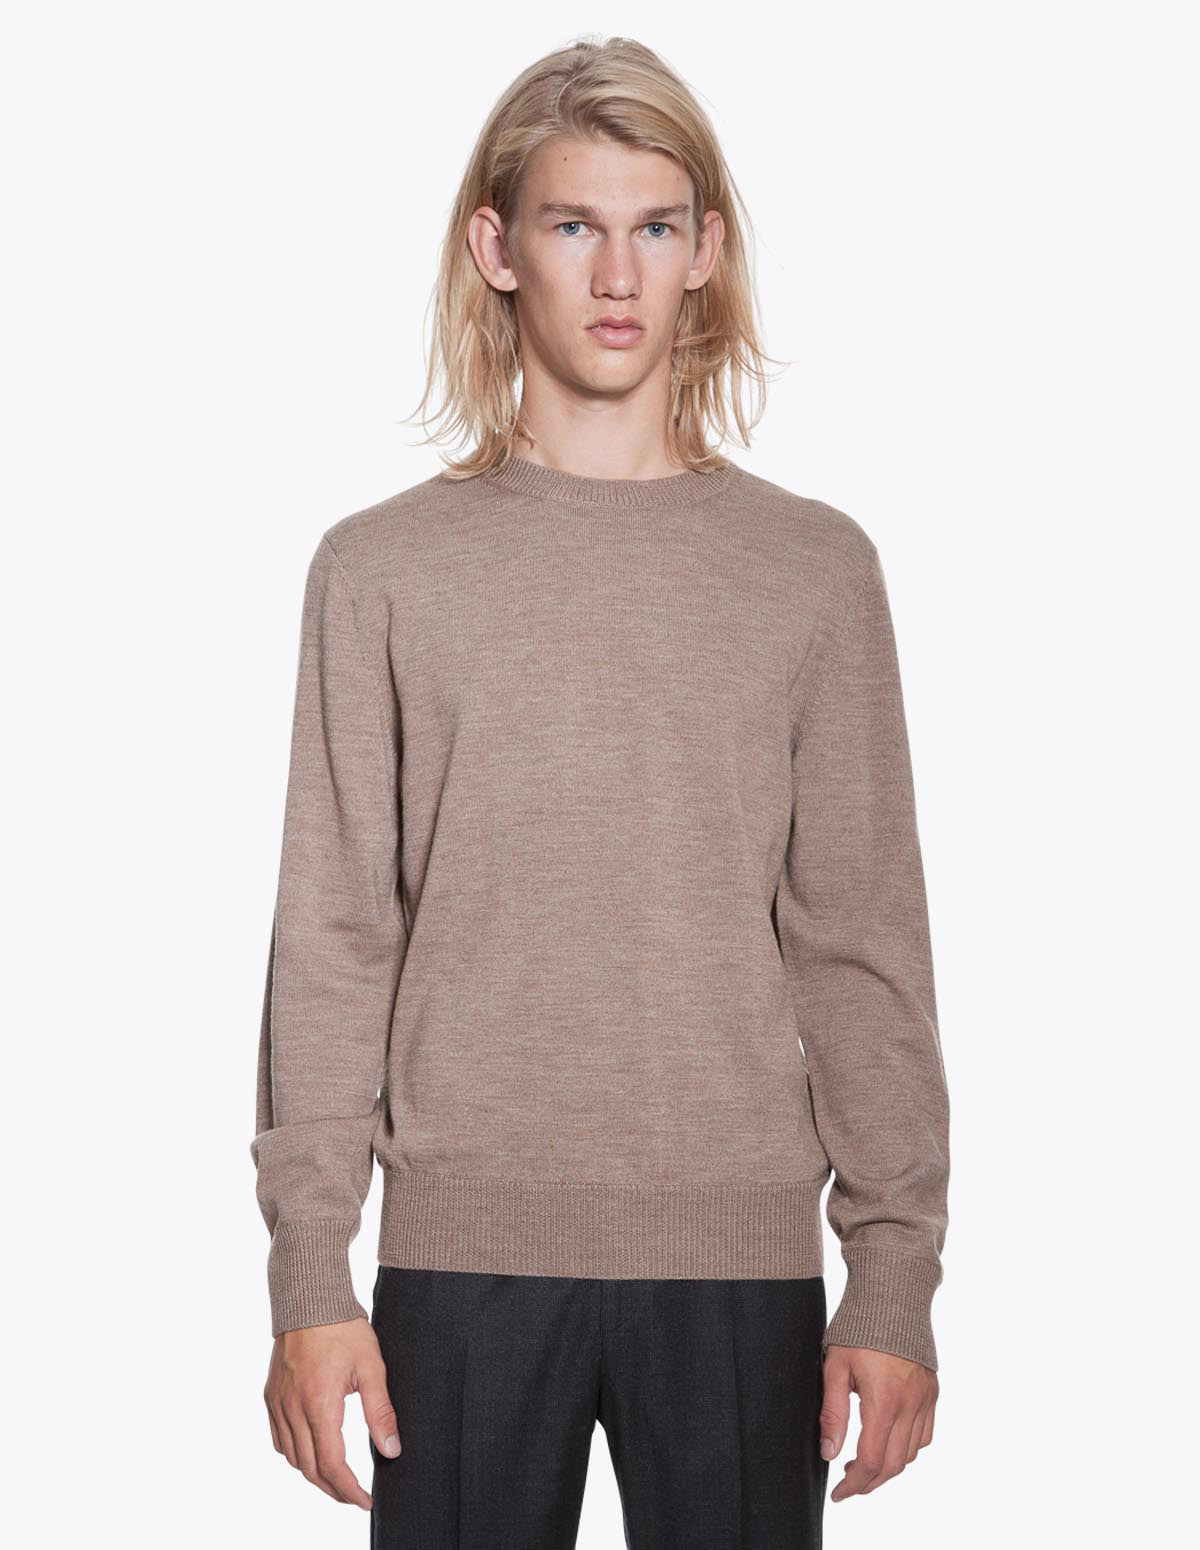 apc-knitted-brown01alt